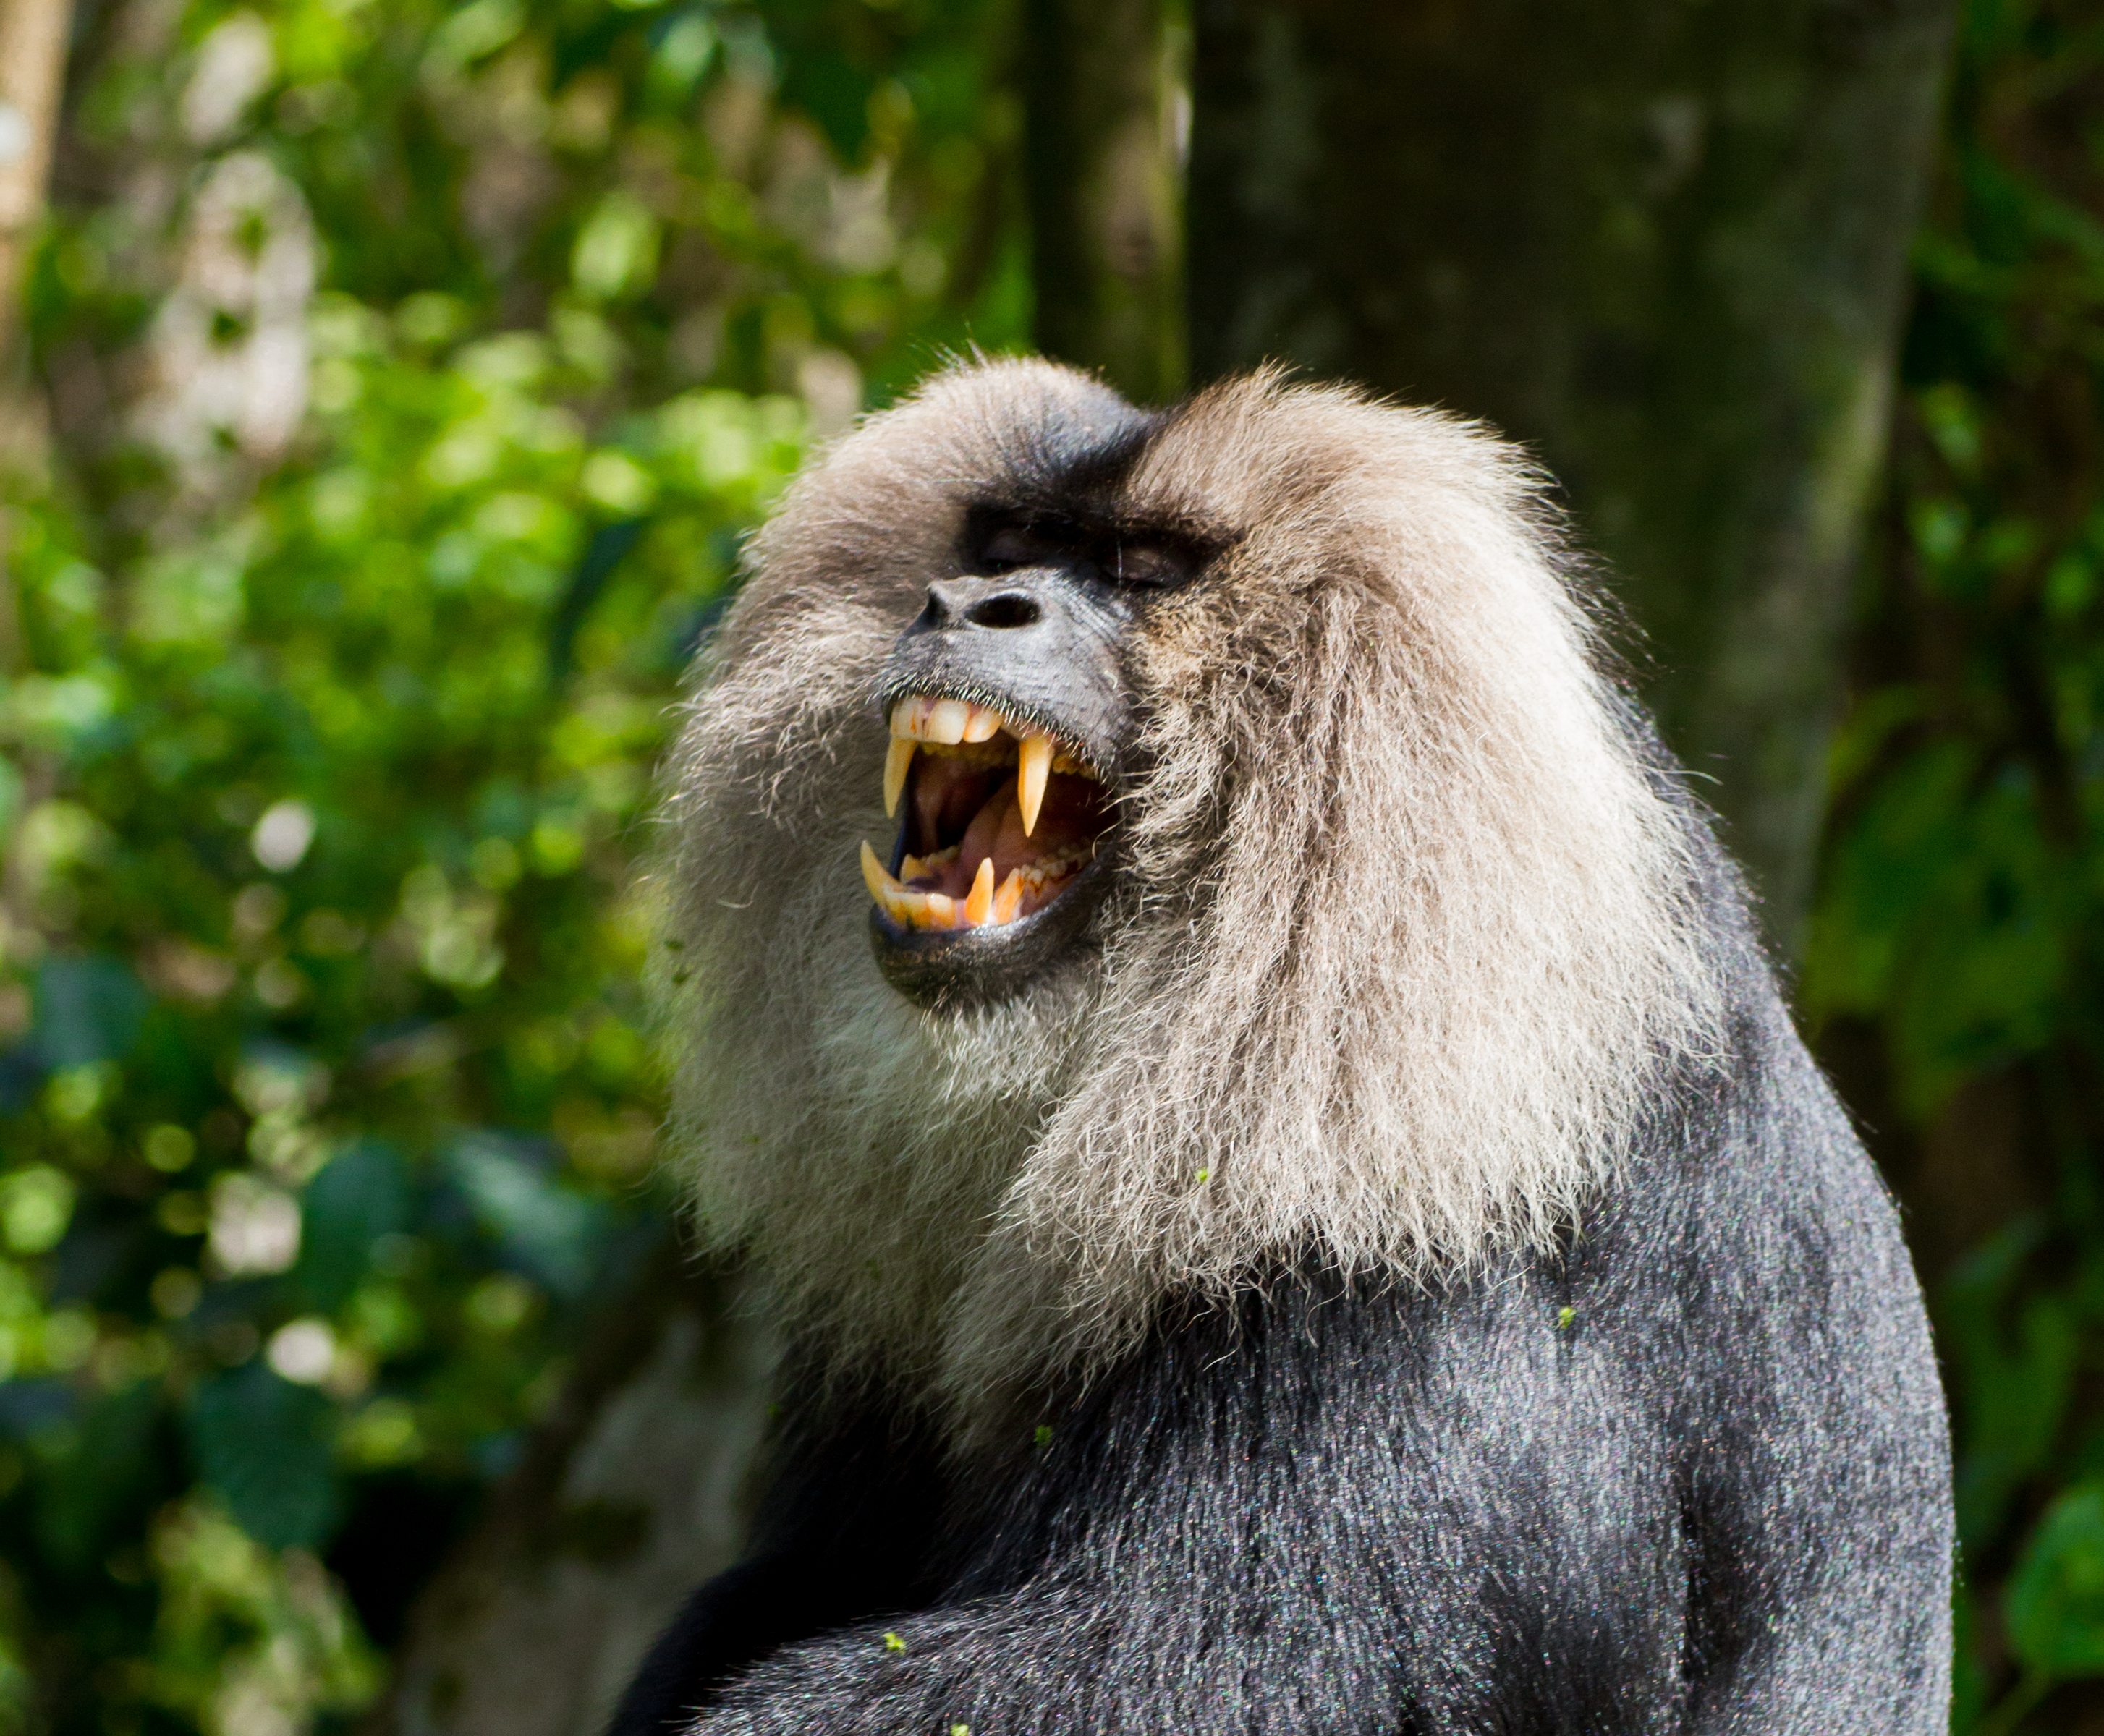 file lion-tailed macaque 3 by n a nazeer jpg